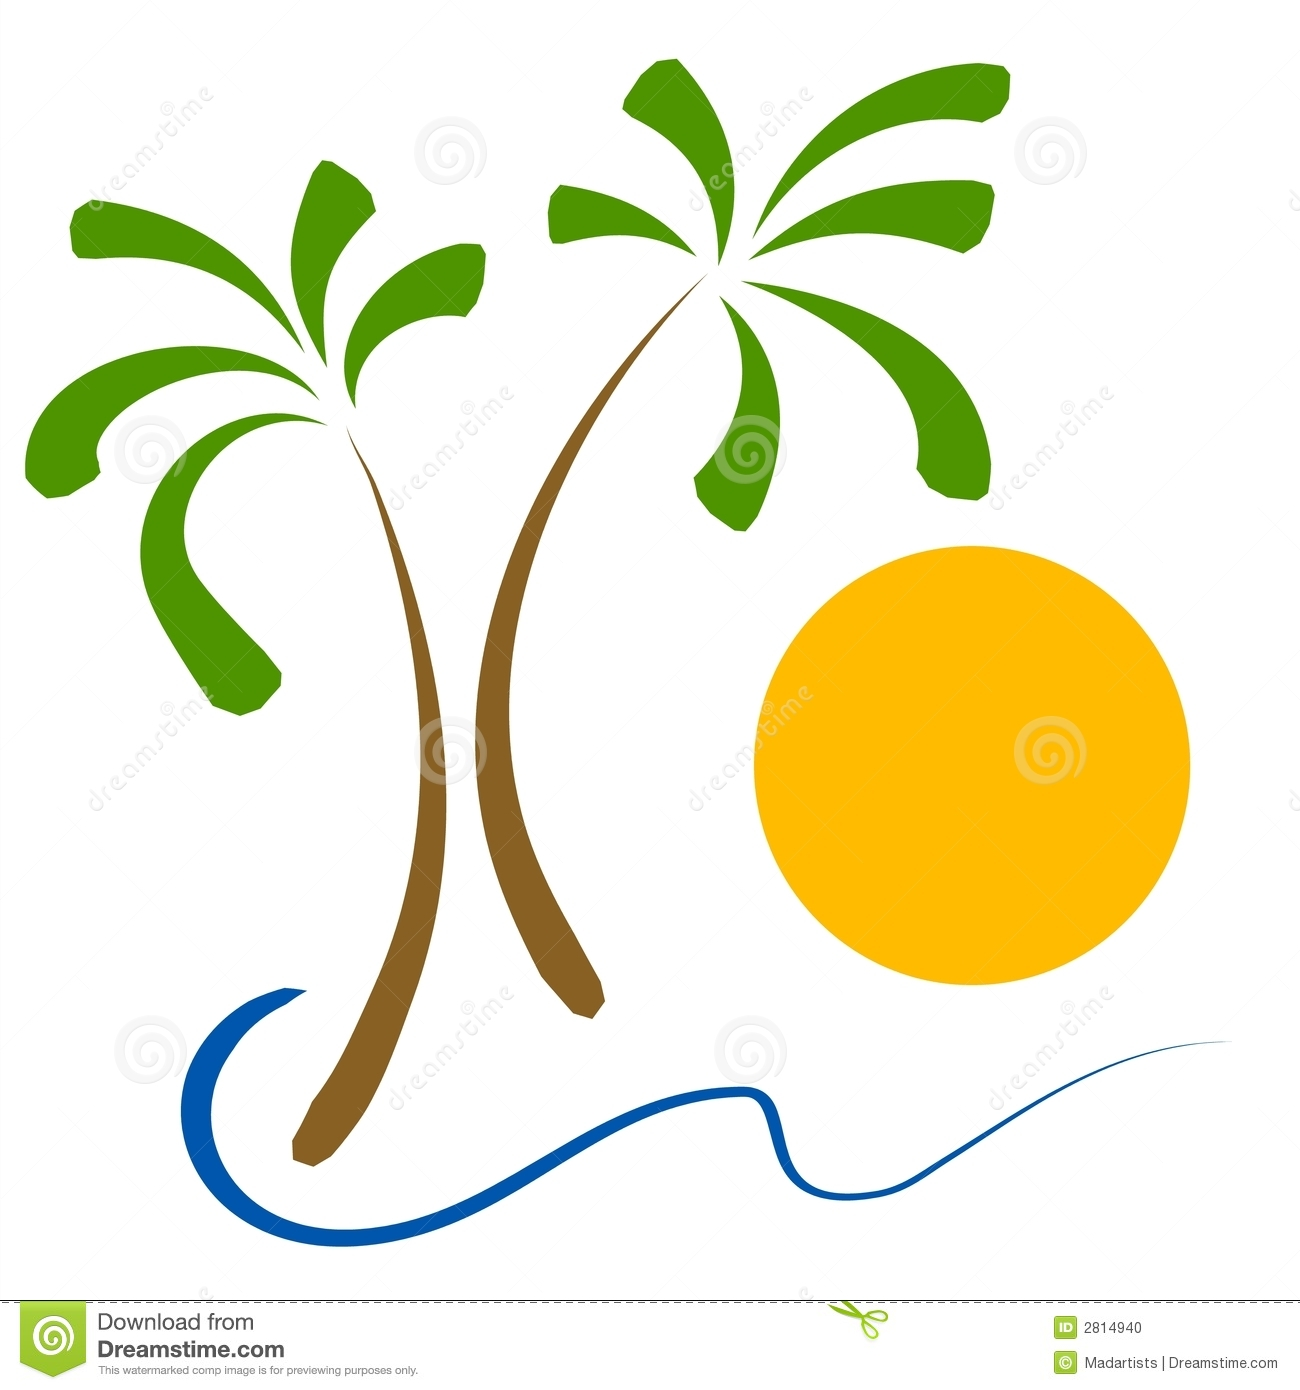 hight resolution of a simple clip art illustration of 2 palm trees ocean waves and a sun sorry extra formats not available for this image